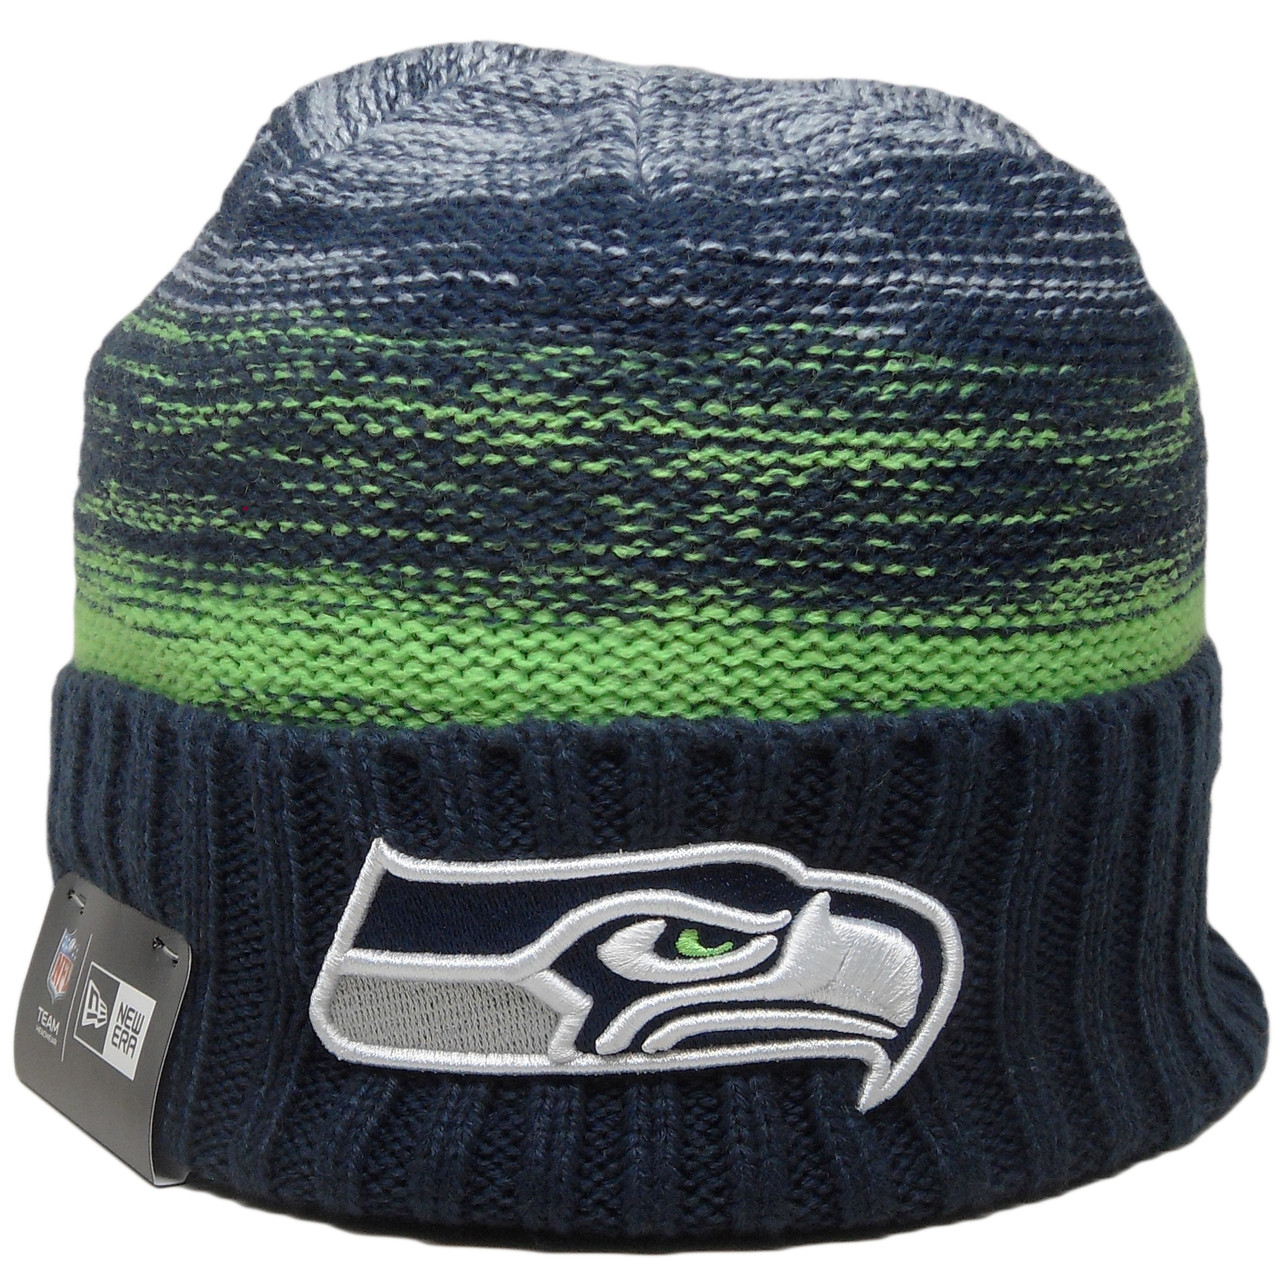 info for 5e963 647a6 Seattle Seahawks New Era Team Snug Knit Hat - Navy, Lime Green, White -  ECapsUnlimited.com